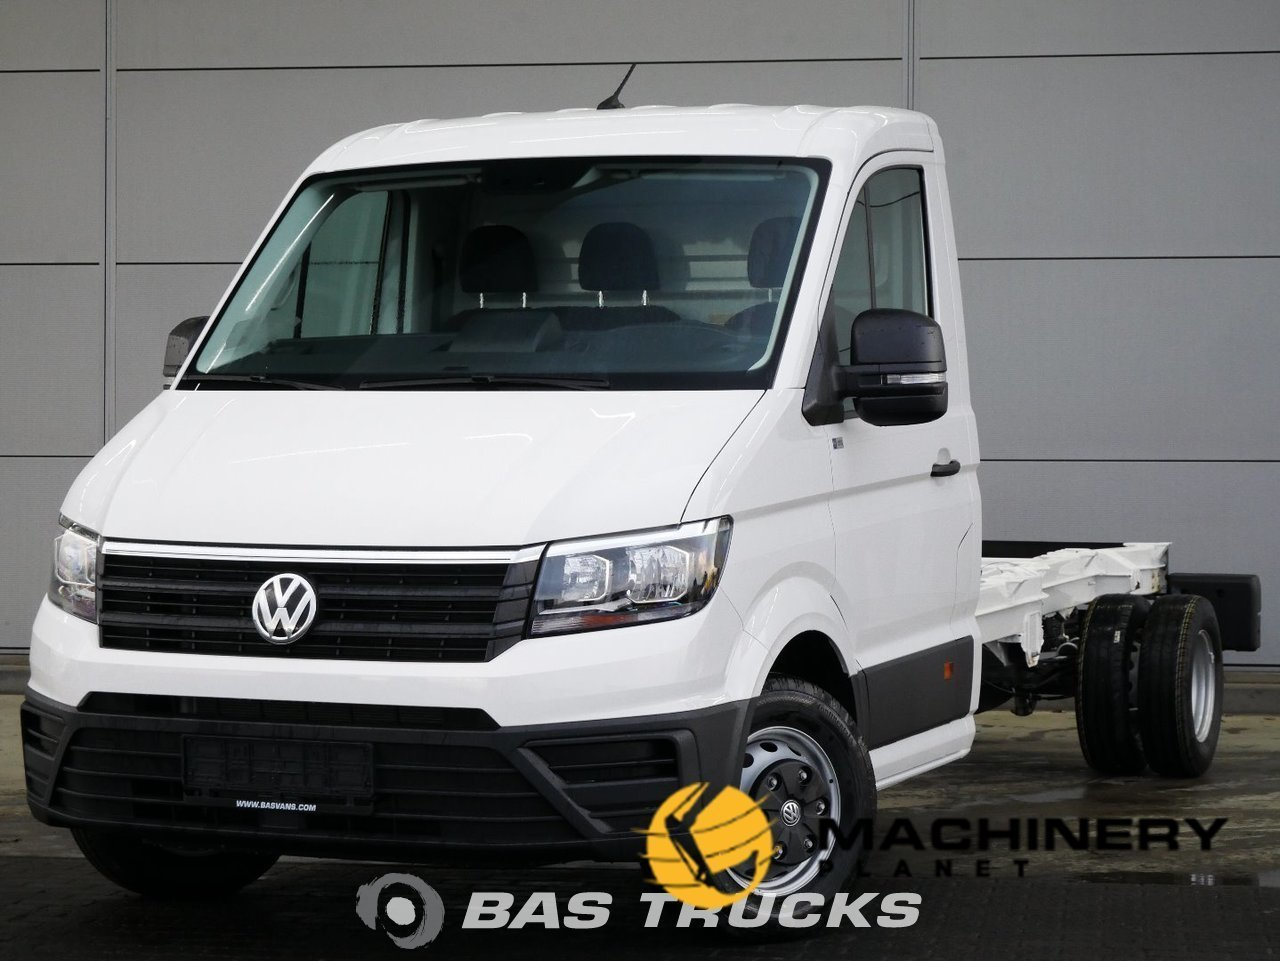 New-Light-commercial-vehicle-Volkswagen-Crafter_140731_1-1554198205843_5ca32ebdcddb9-1.jpg